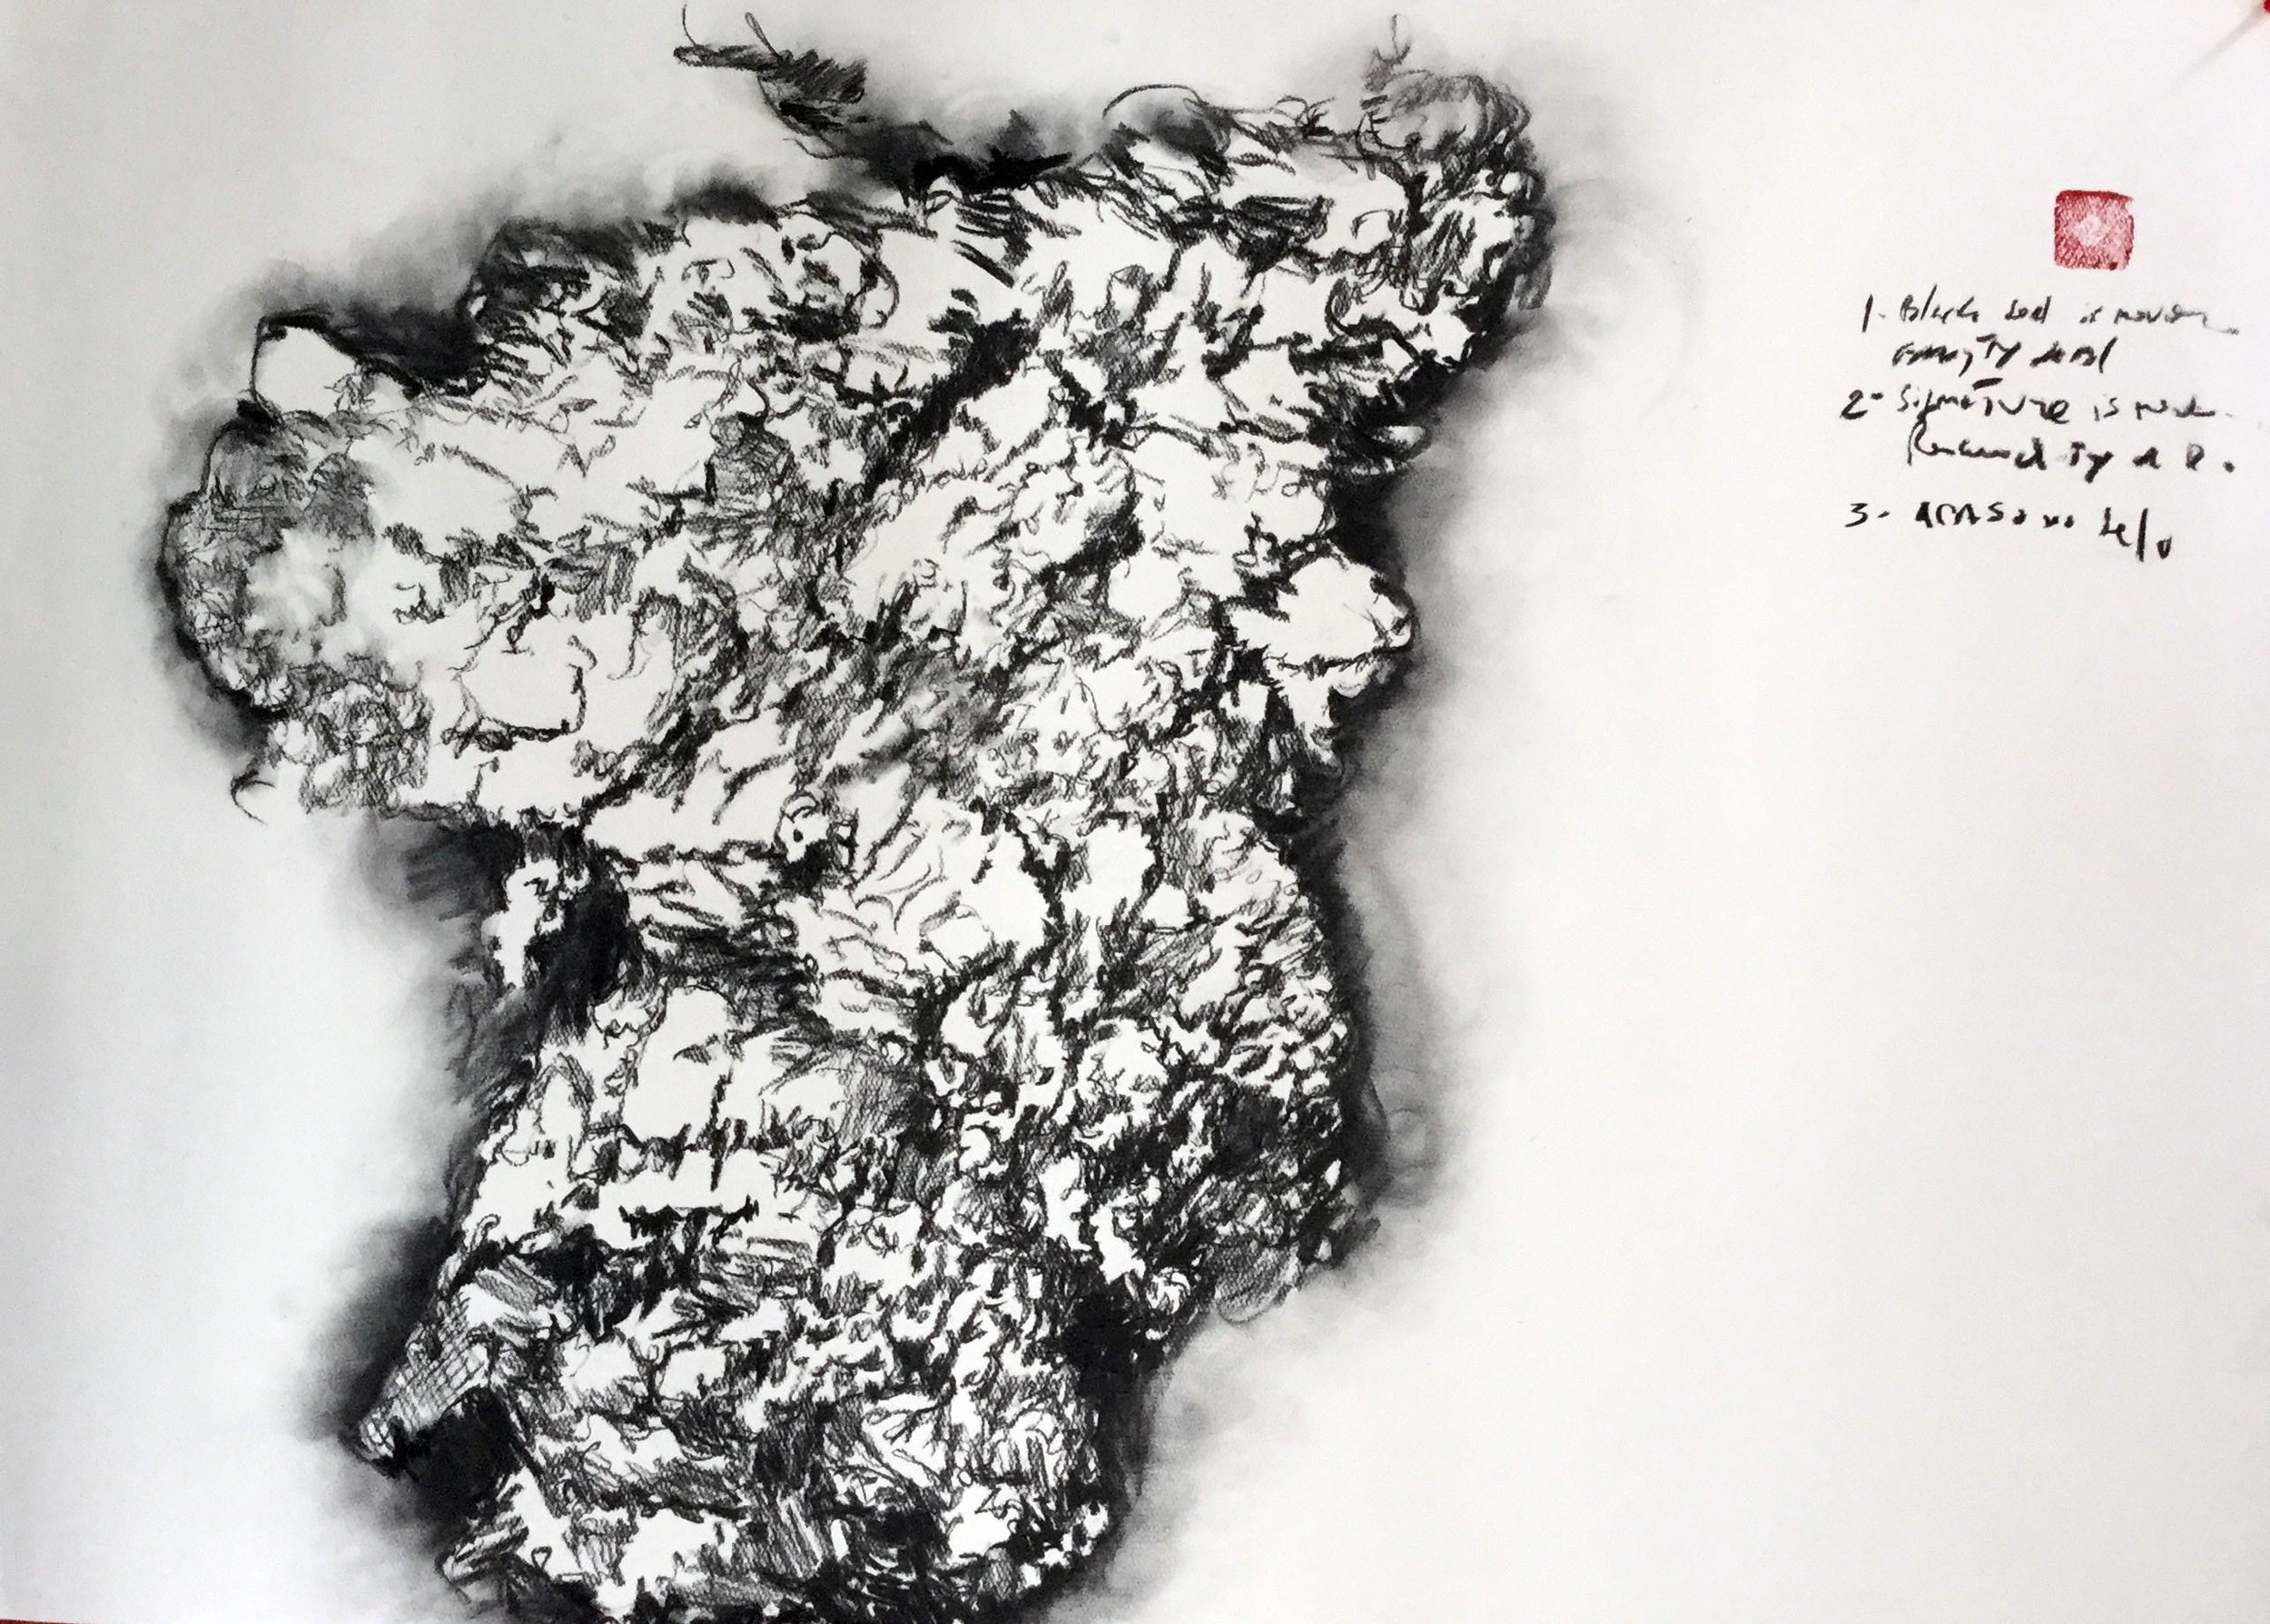 Tragedy (detail) - charcoal on 400 g paper -100cmX80cm - China Residence Charcoal Home